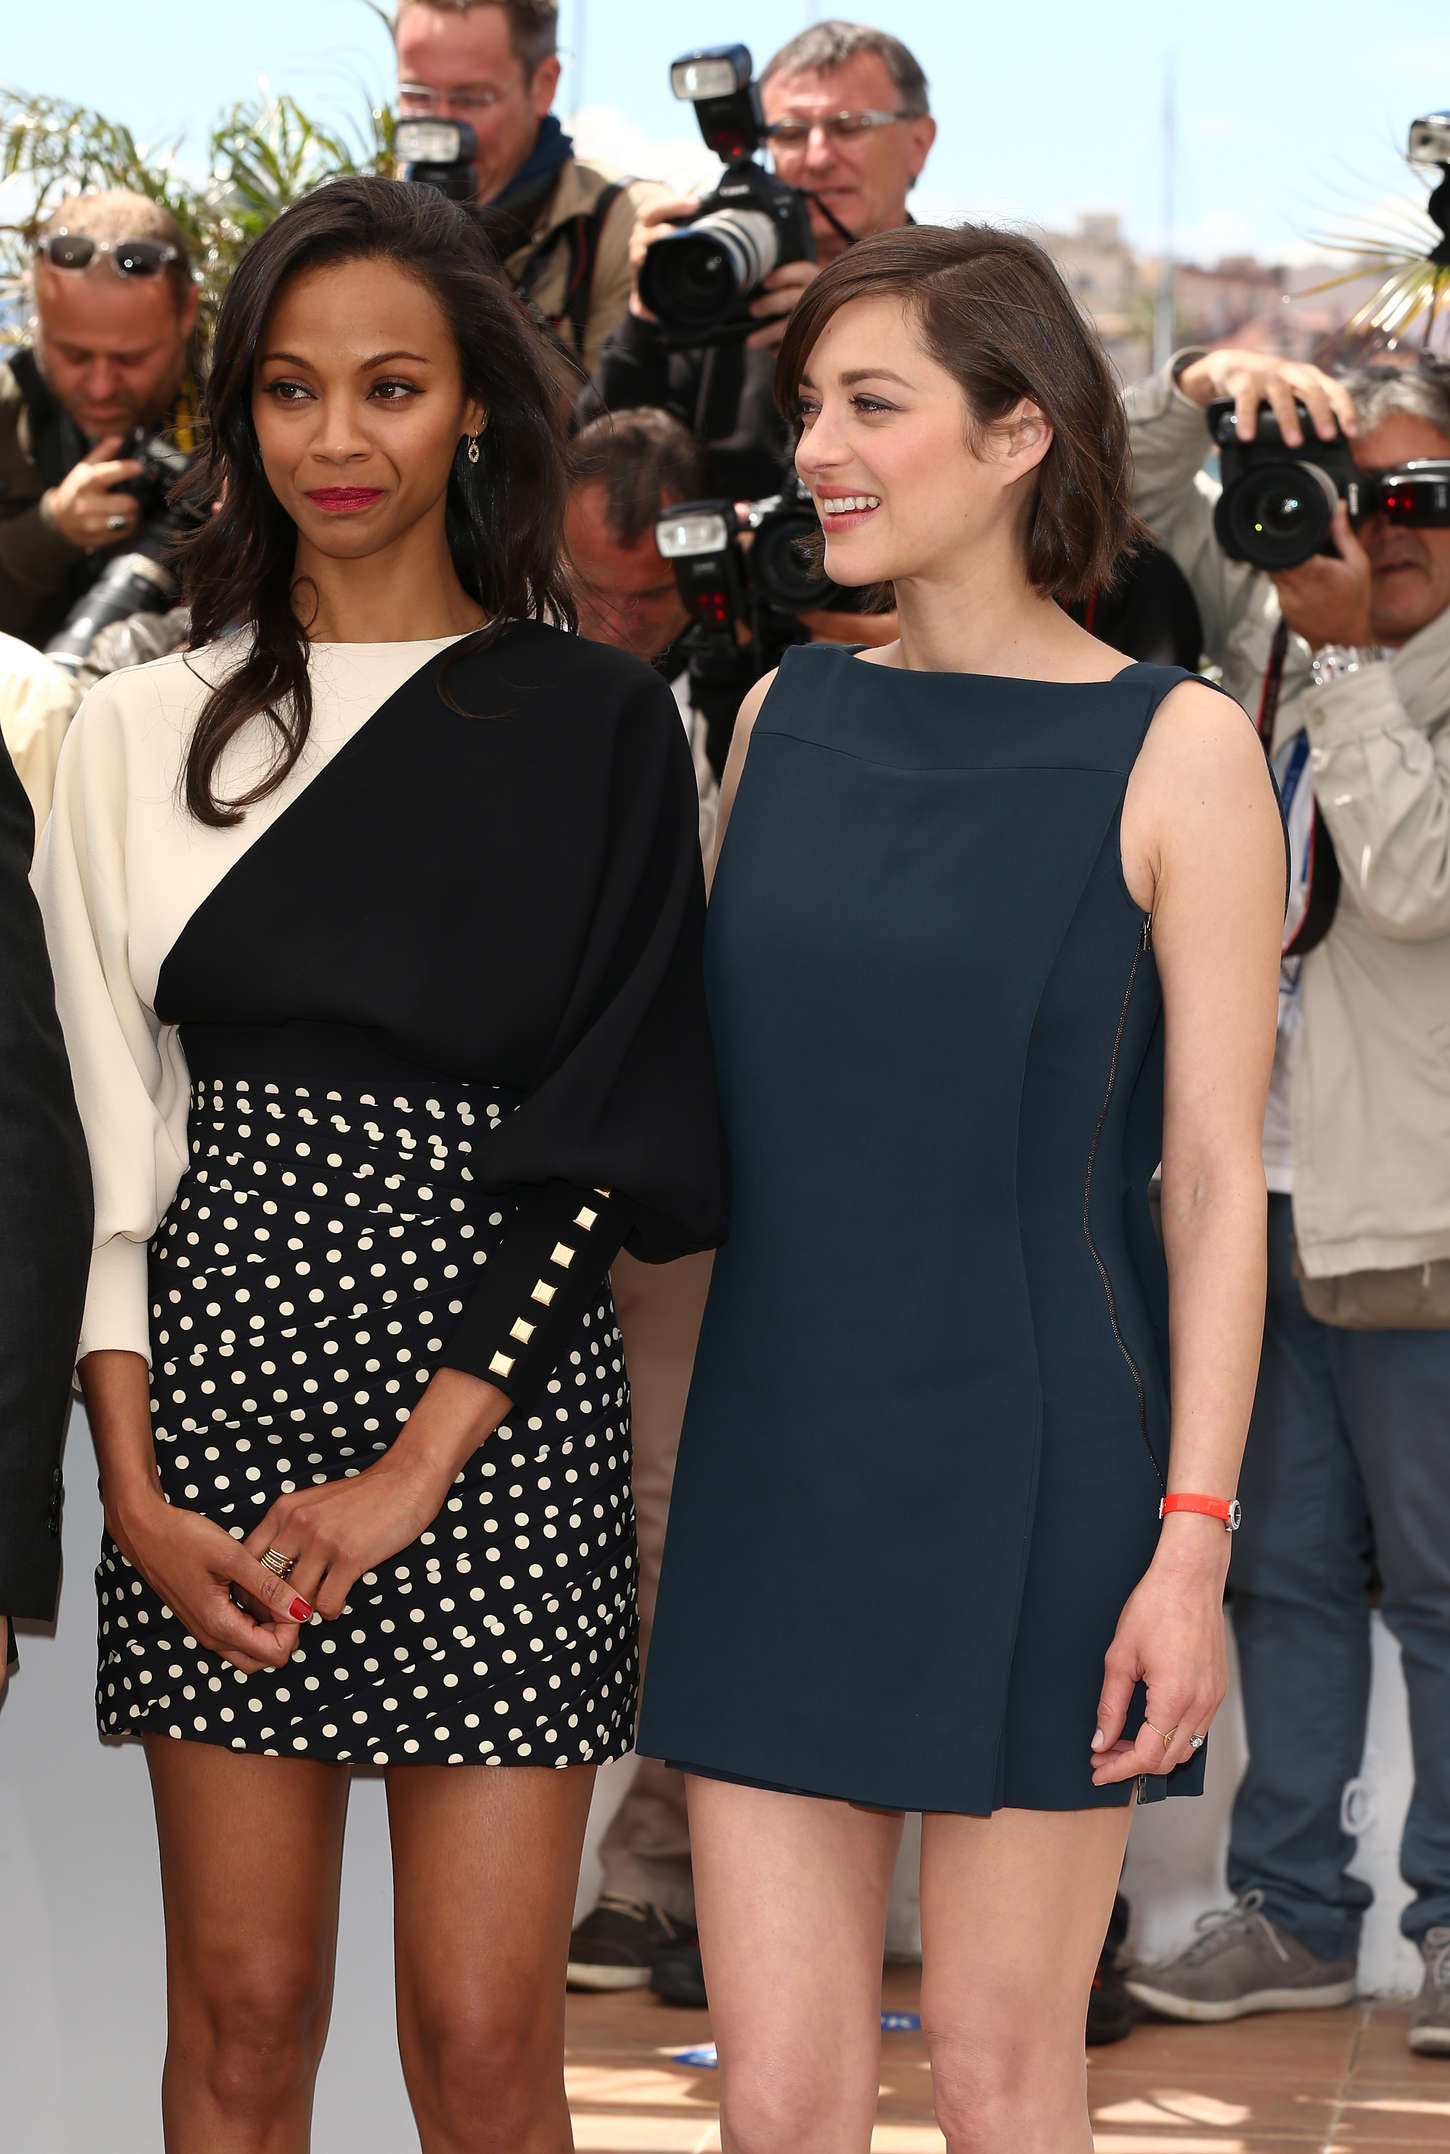 ¿Cuánto mide Marion Cotillard? - Real height Zoe-Saldana-and-Marion-Cotillard-at-Blood-Ties-Photocall-at-the-66th-Cannes-Film-Festival-04